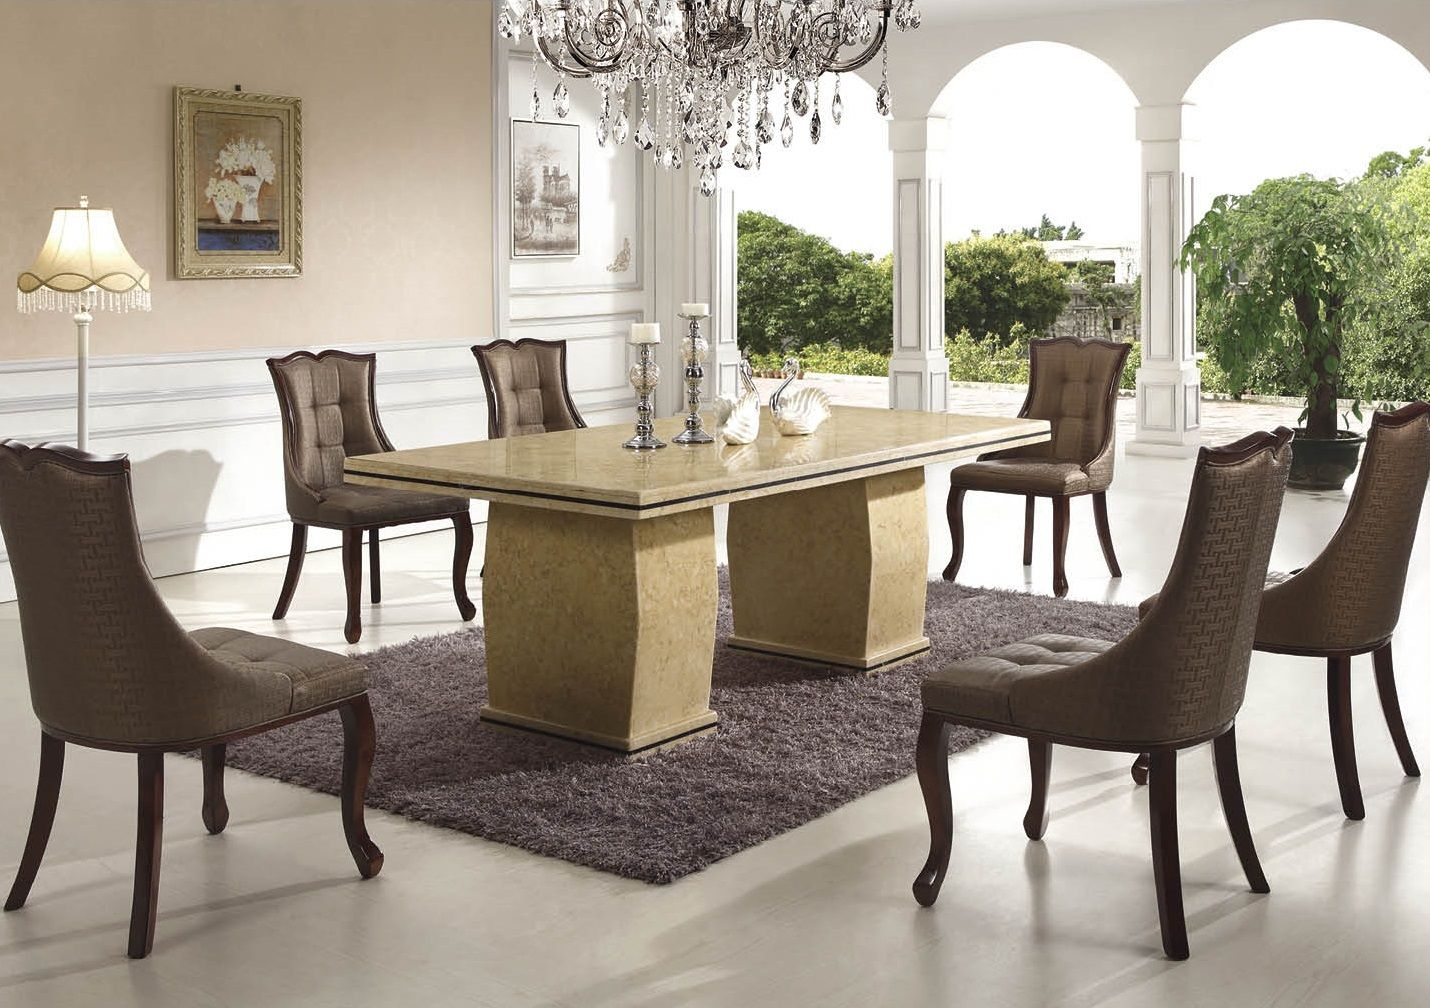 Dining Room Contemporary Marble Dining Table For 6 Brown Dining Fascinating White Dining Room Table And 6 Chairs Inspiration